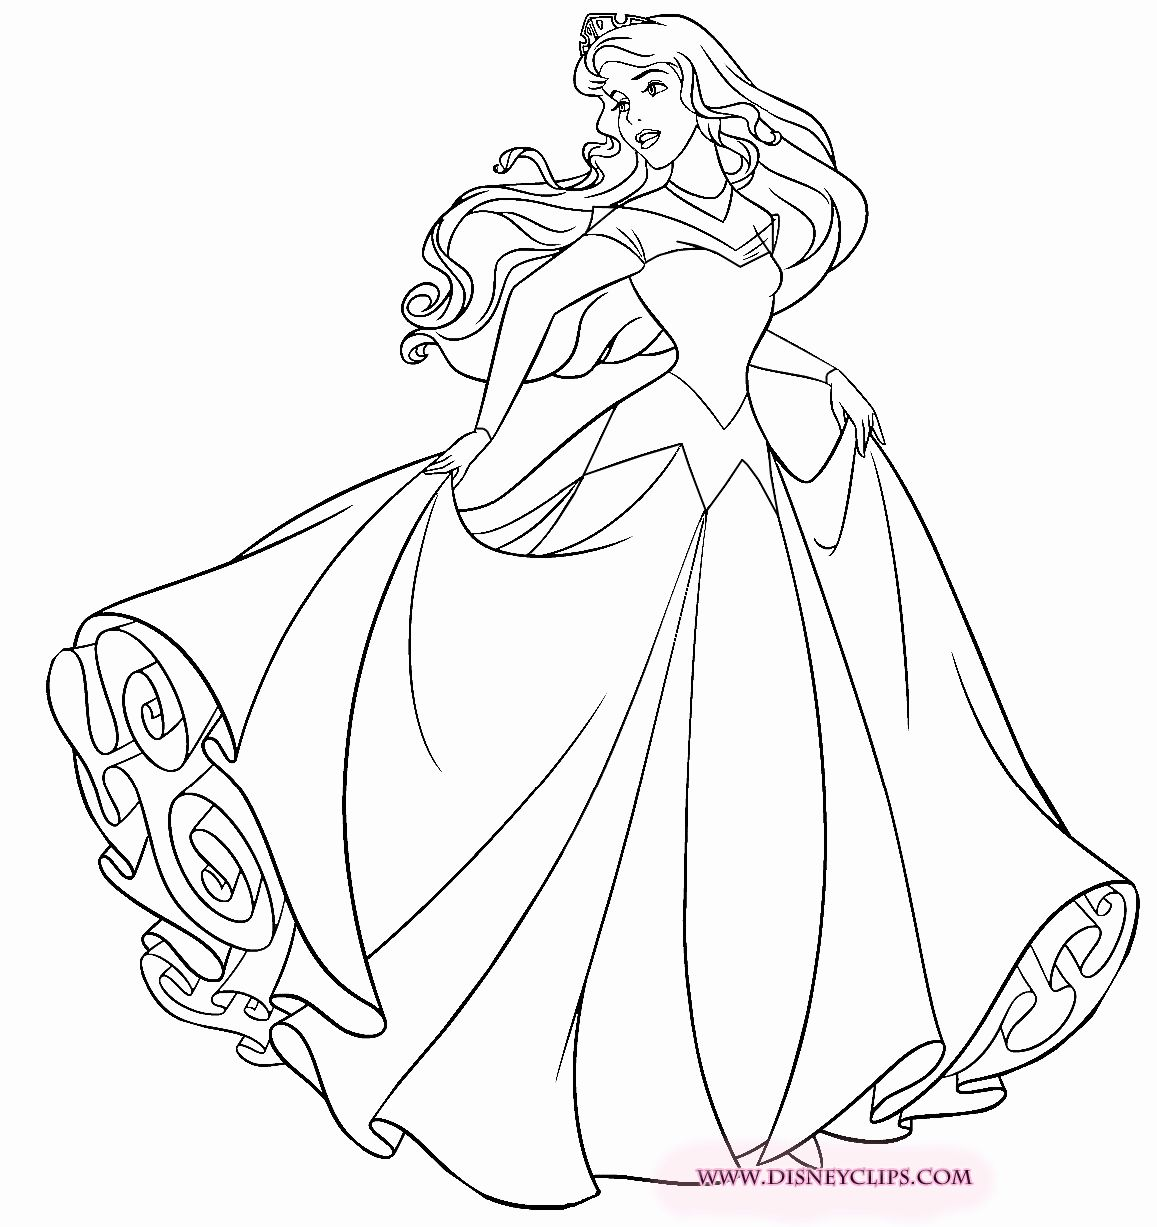 Disney Princess Aurora Coloring Pages Lovely Princess Aurora Coloring Page Disney Princess Coloring Pages Disney Princess Colors Sleeping Beauty Coloring Pages